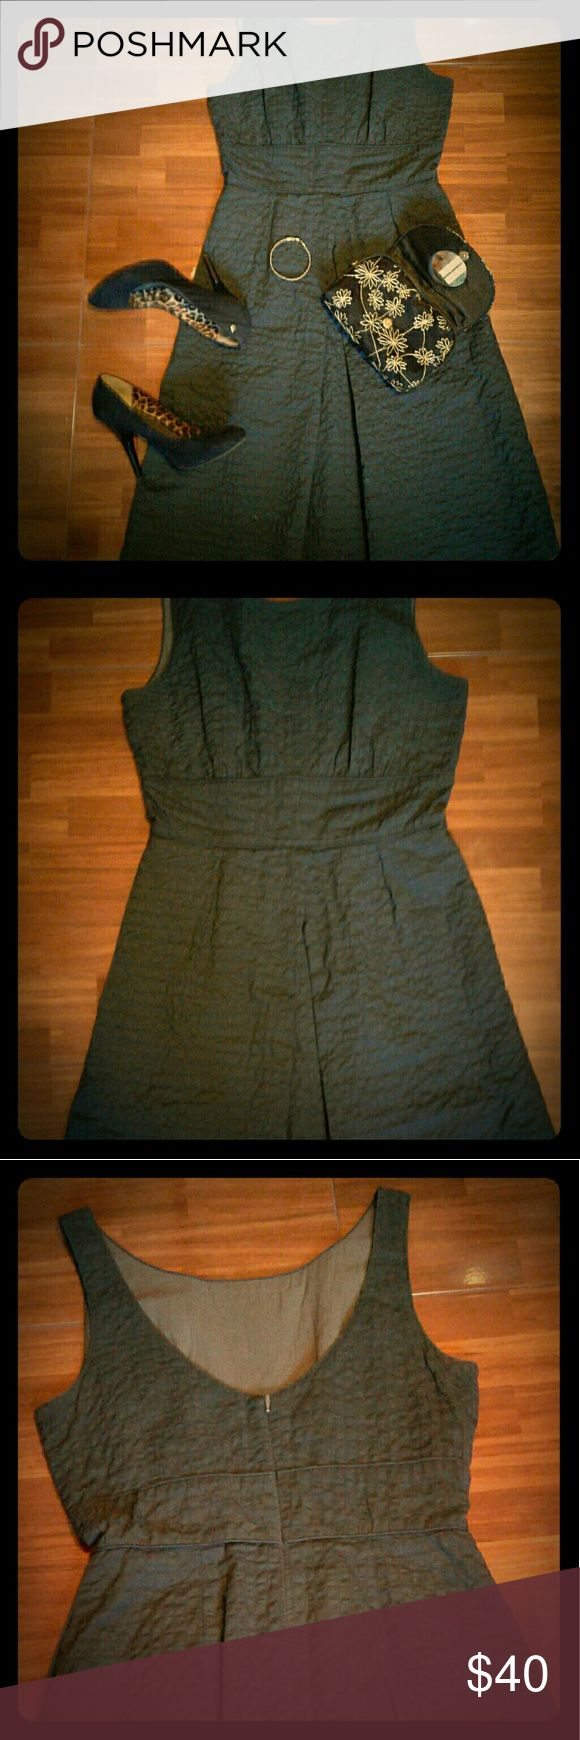 "J. Crew Charcoal Gray Sleeveless A-Line Dress Gently worn J.Crew dress. Sleeveless dress with a bateau neckline, low scoop back, and cinched waist. Zipper located on the back with a closure. Below knee length. Fabulous dinner dress!  100% Cotton with cotton lining.  Length: 37""  Bust: 32""  Waist: 28"" J. Crew Factory Dresses Midi"